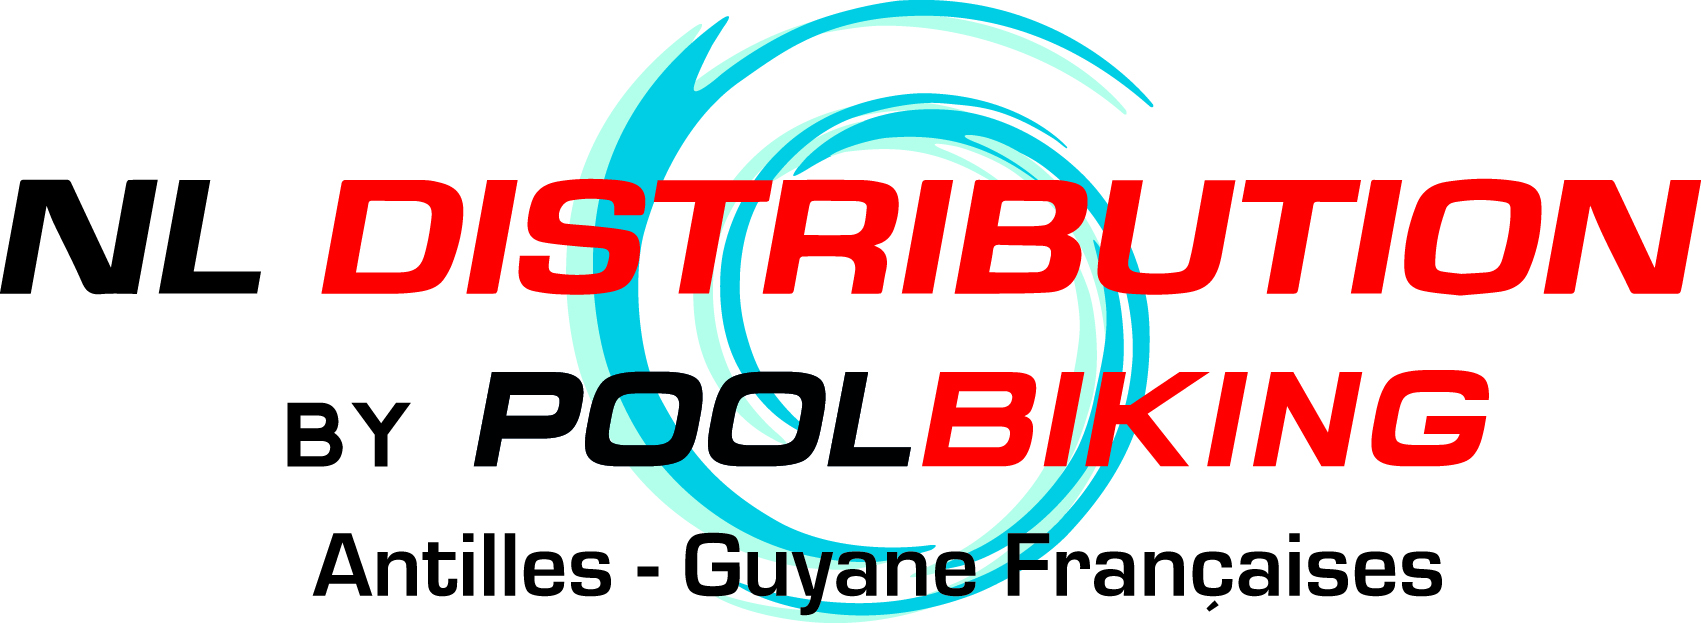 Logo nl distribution by poolbiking ant guy